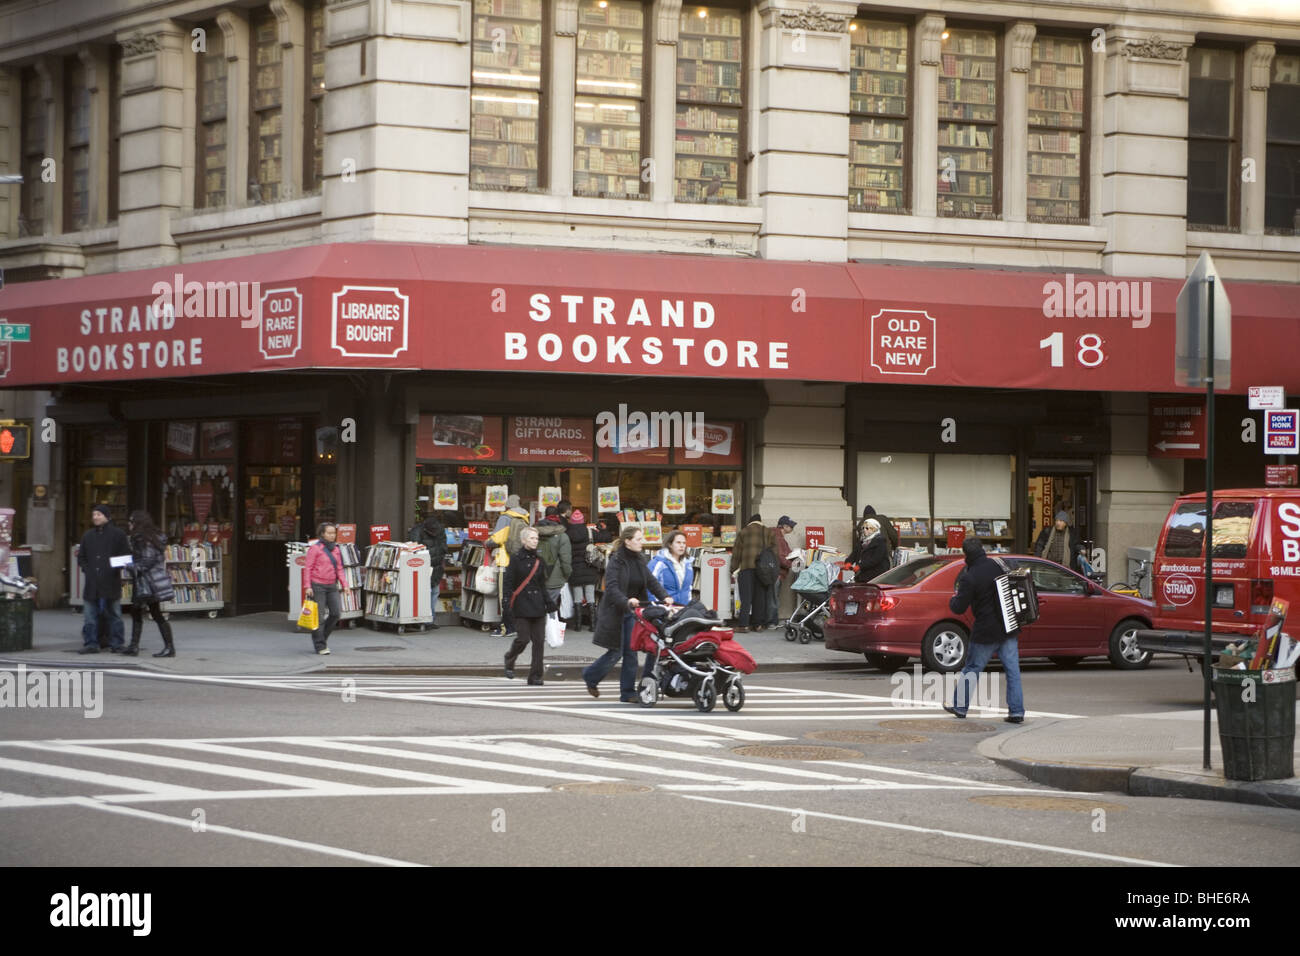 Strand Bookstore, New York's most famous at the corner of 12th St. & Broadway in Manhattan. - Stock Image